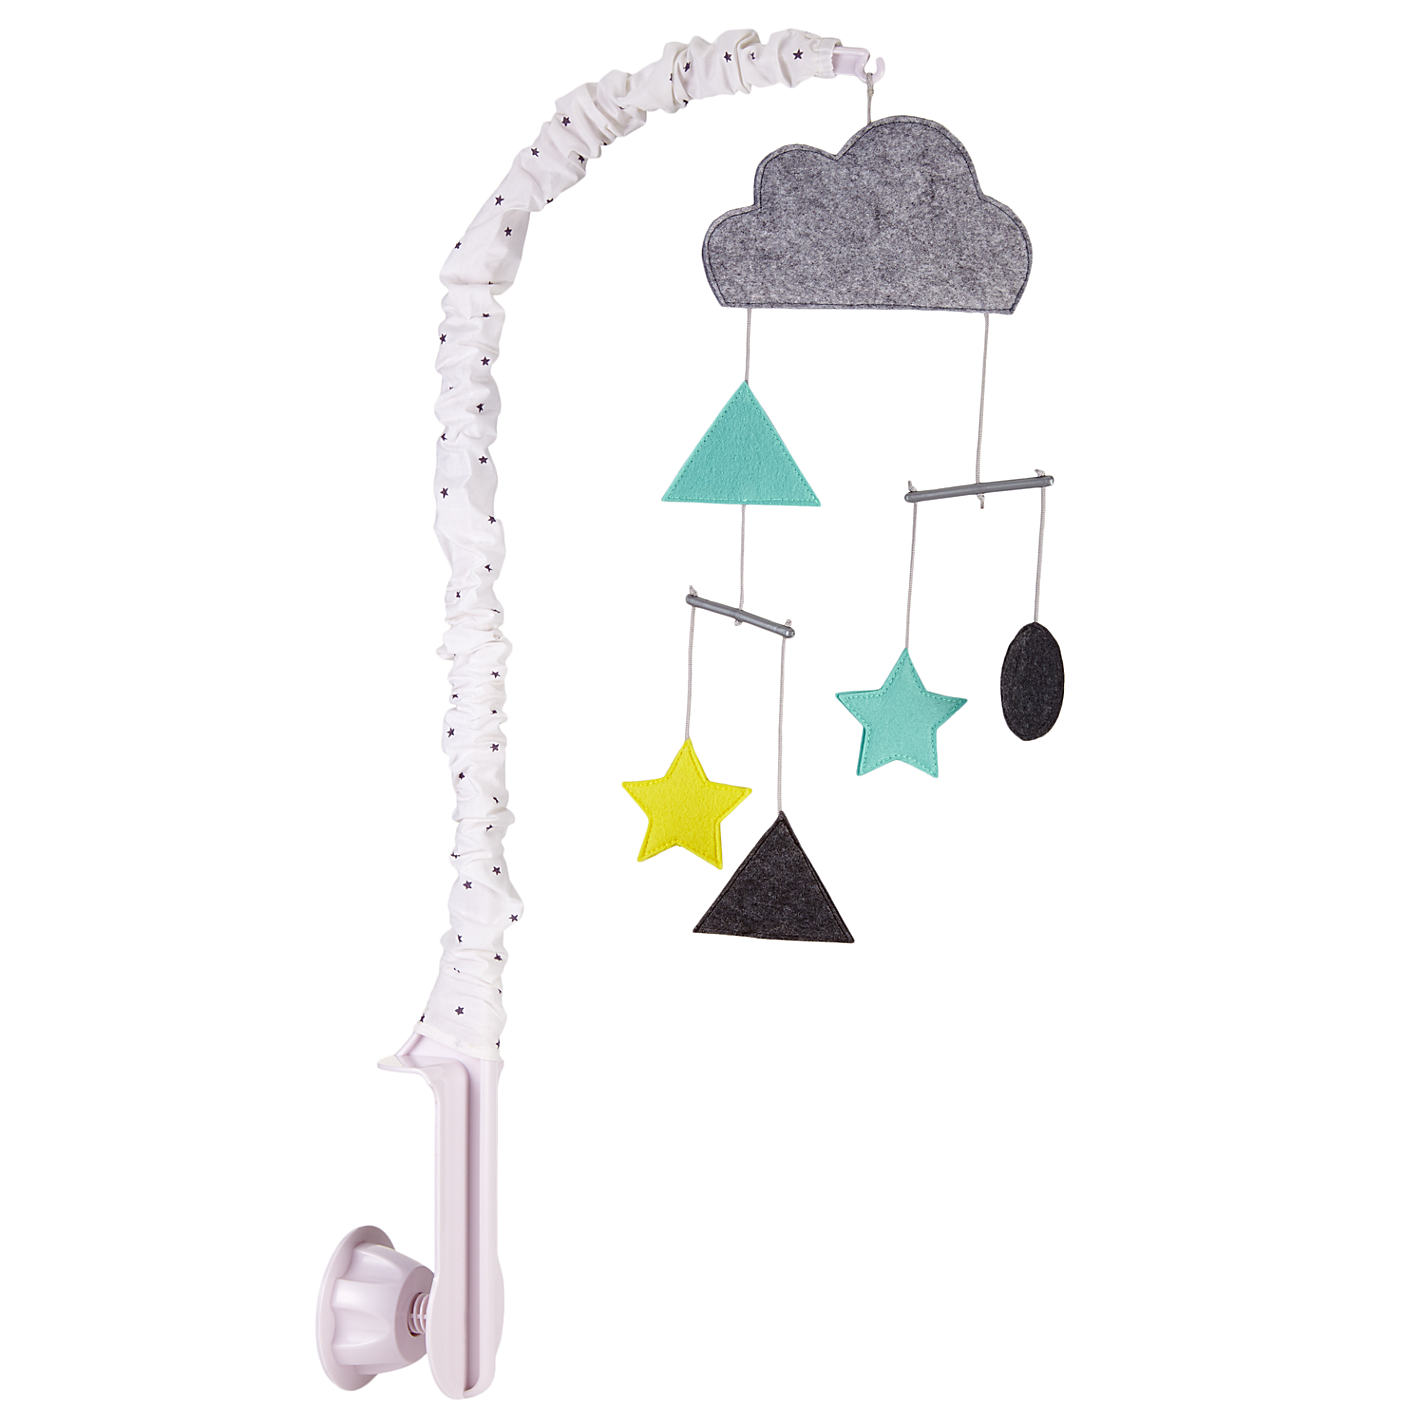 cot mobiles baby height charts john lewis baby nursery furniture uk soal wa jawab